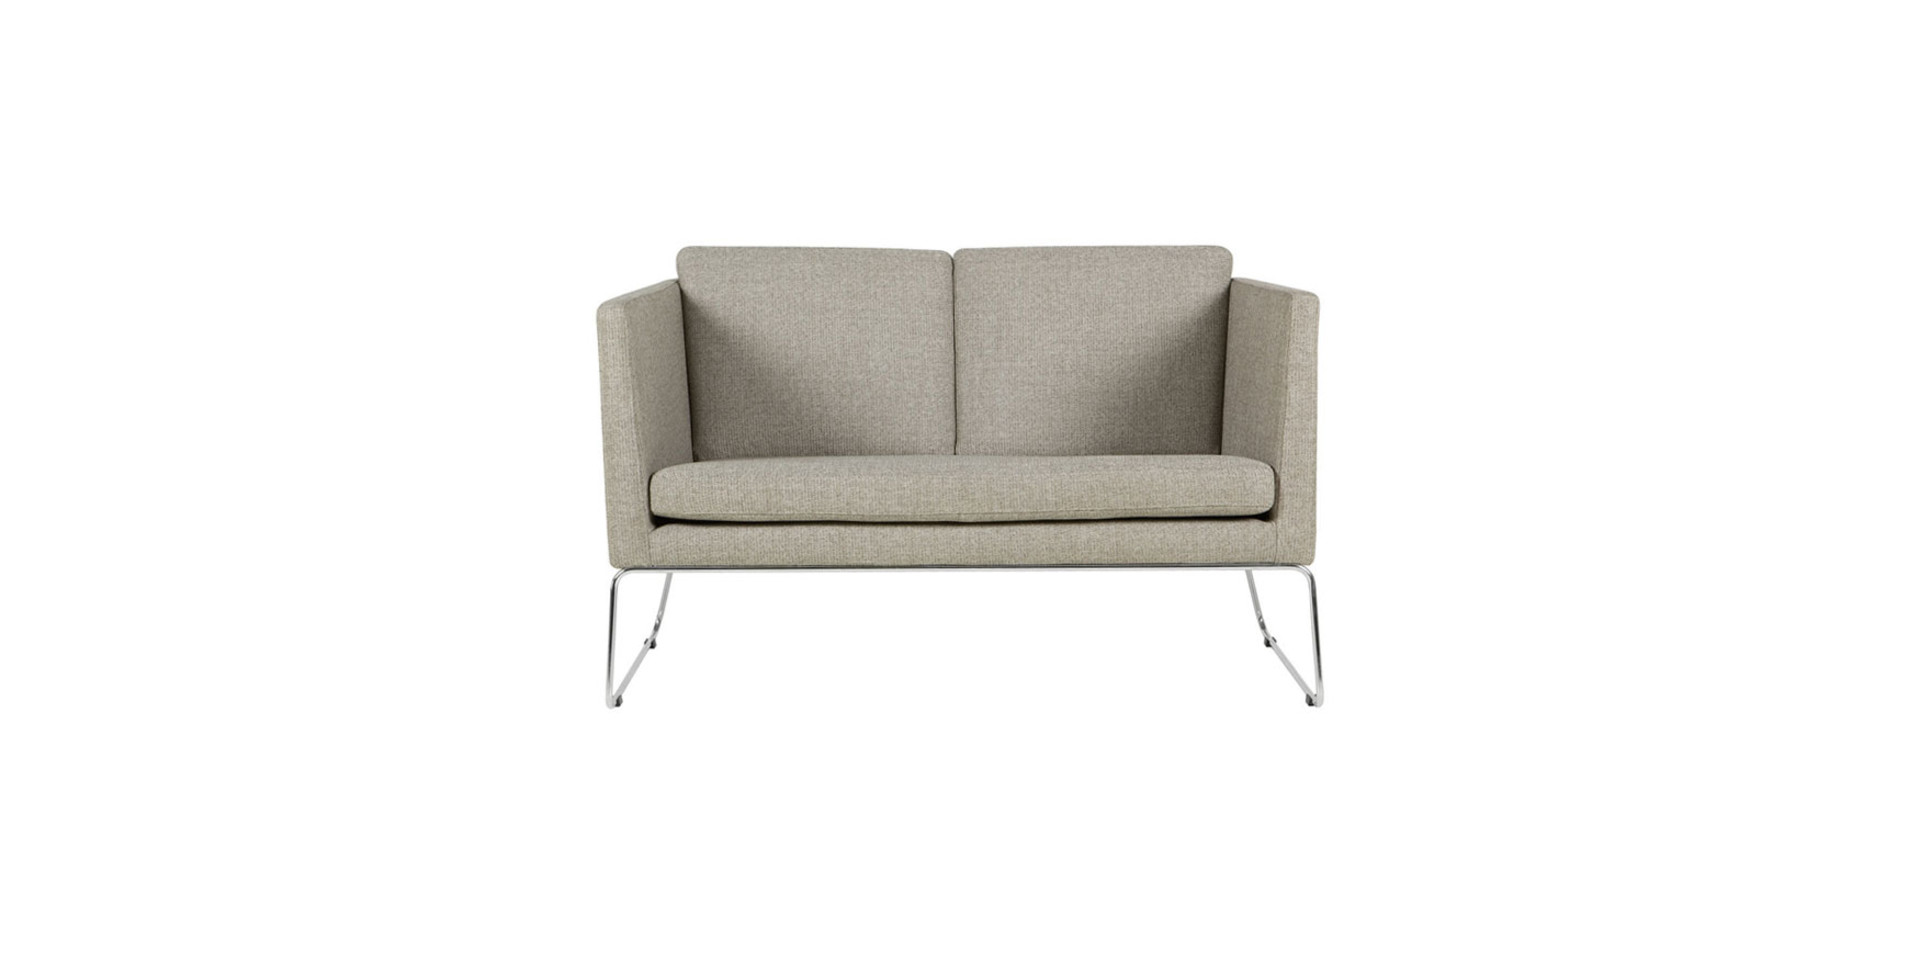 sits-clark-canape-2seater_origin51_light_grey_1_0